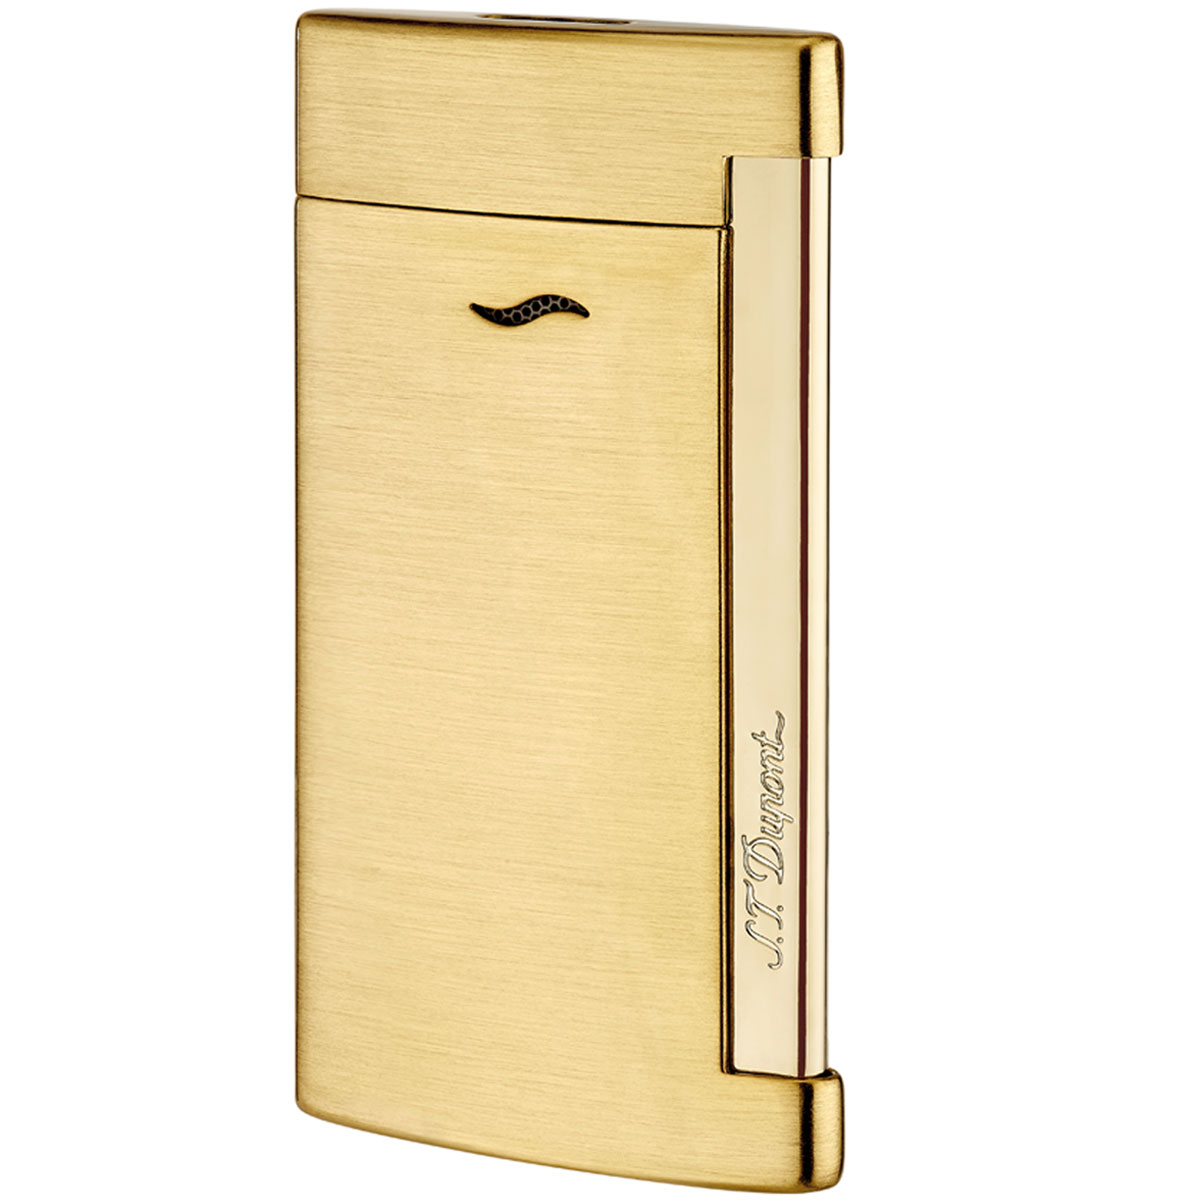 ST Dupont Slim 7 Full Golden Brushed Lighter